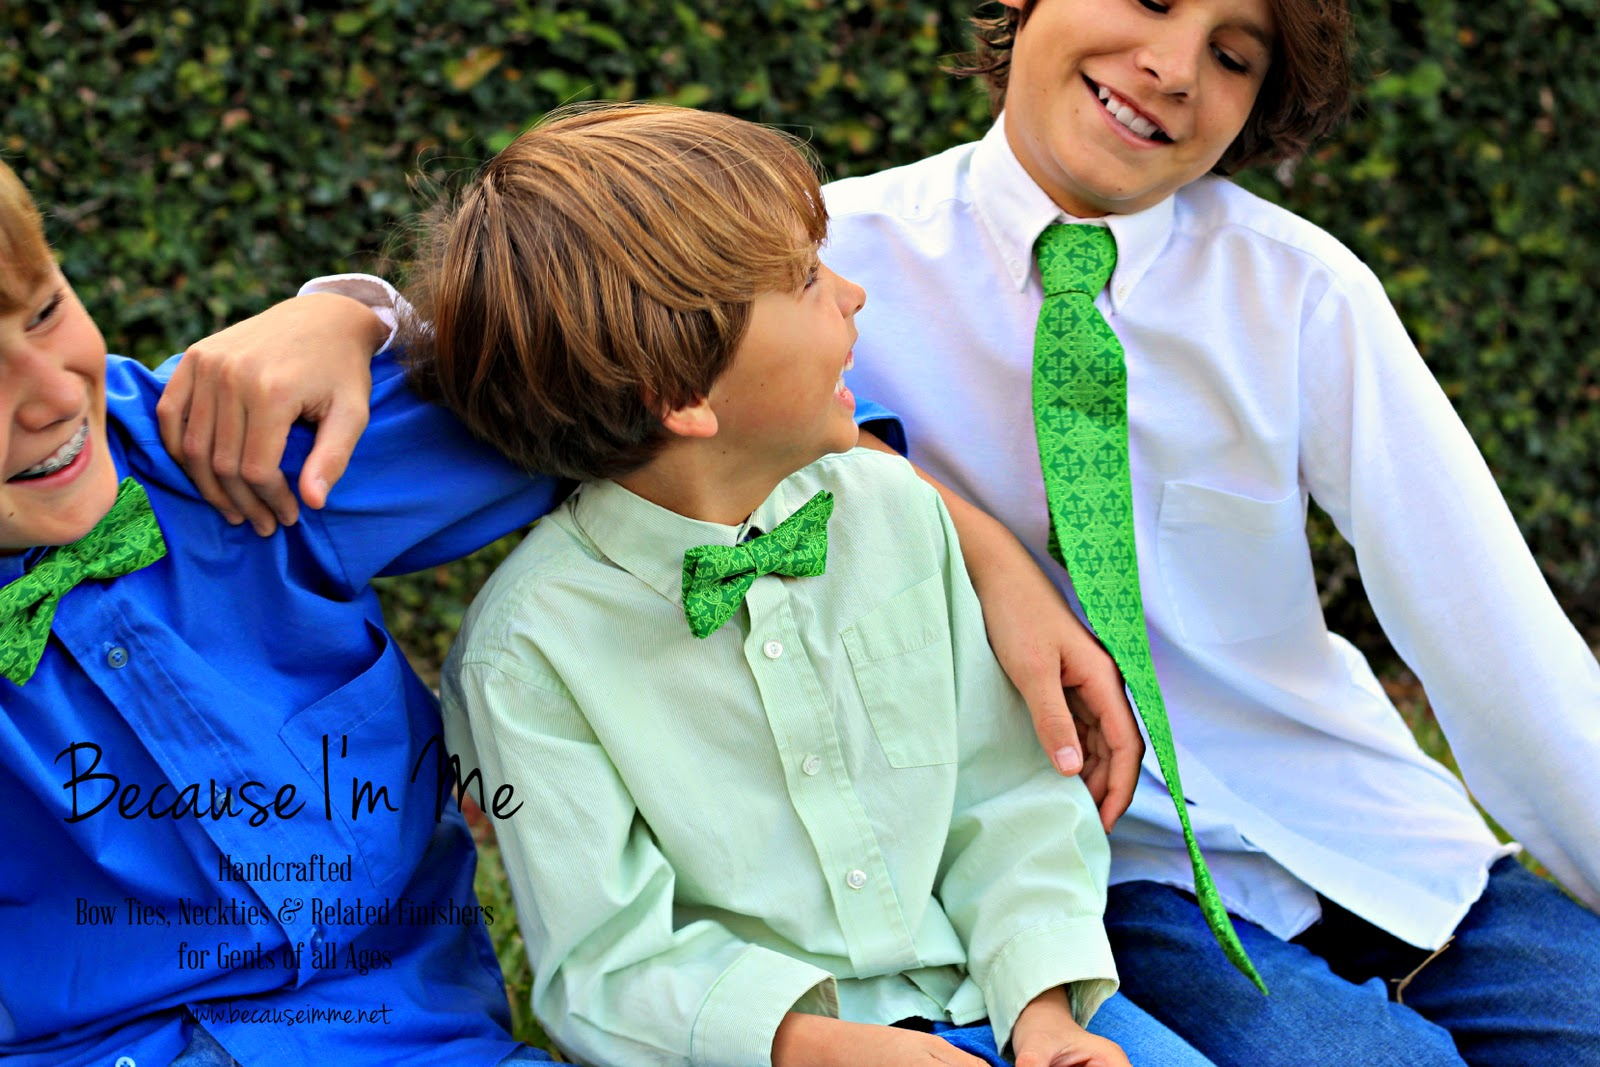 Celtic Green Bow Ties and Neckties for St. Patrick's Day, available for both men and boys